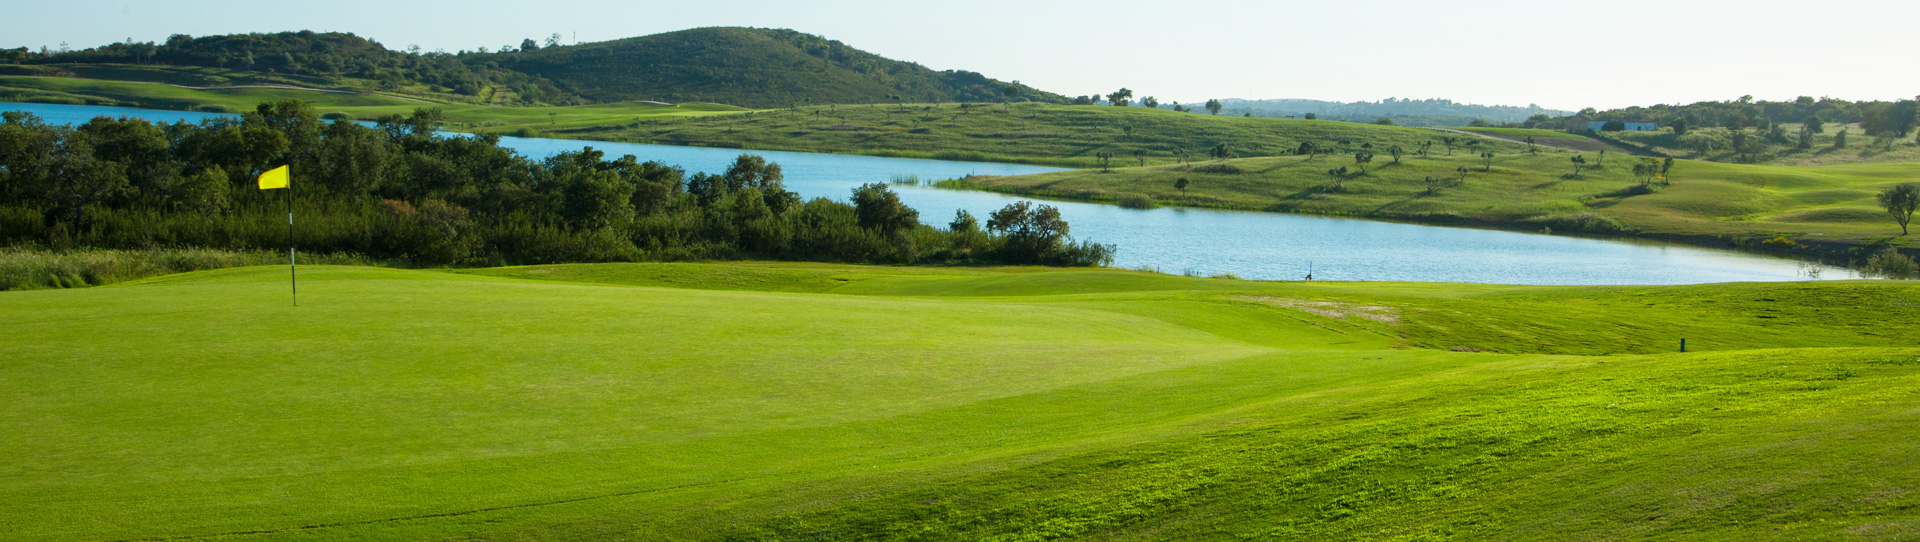 Alamos Golf Course - Photo 2